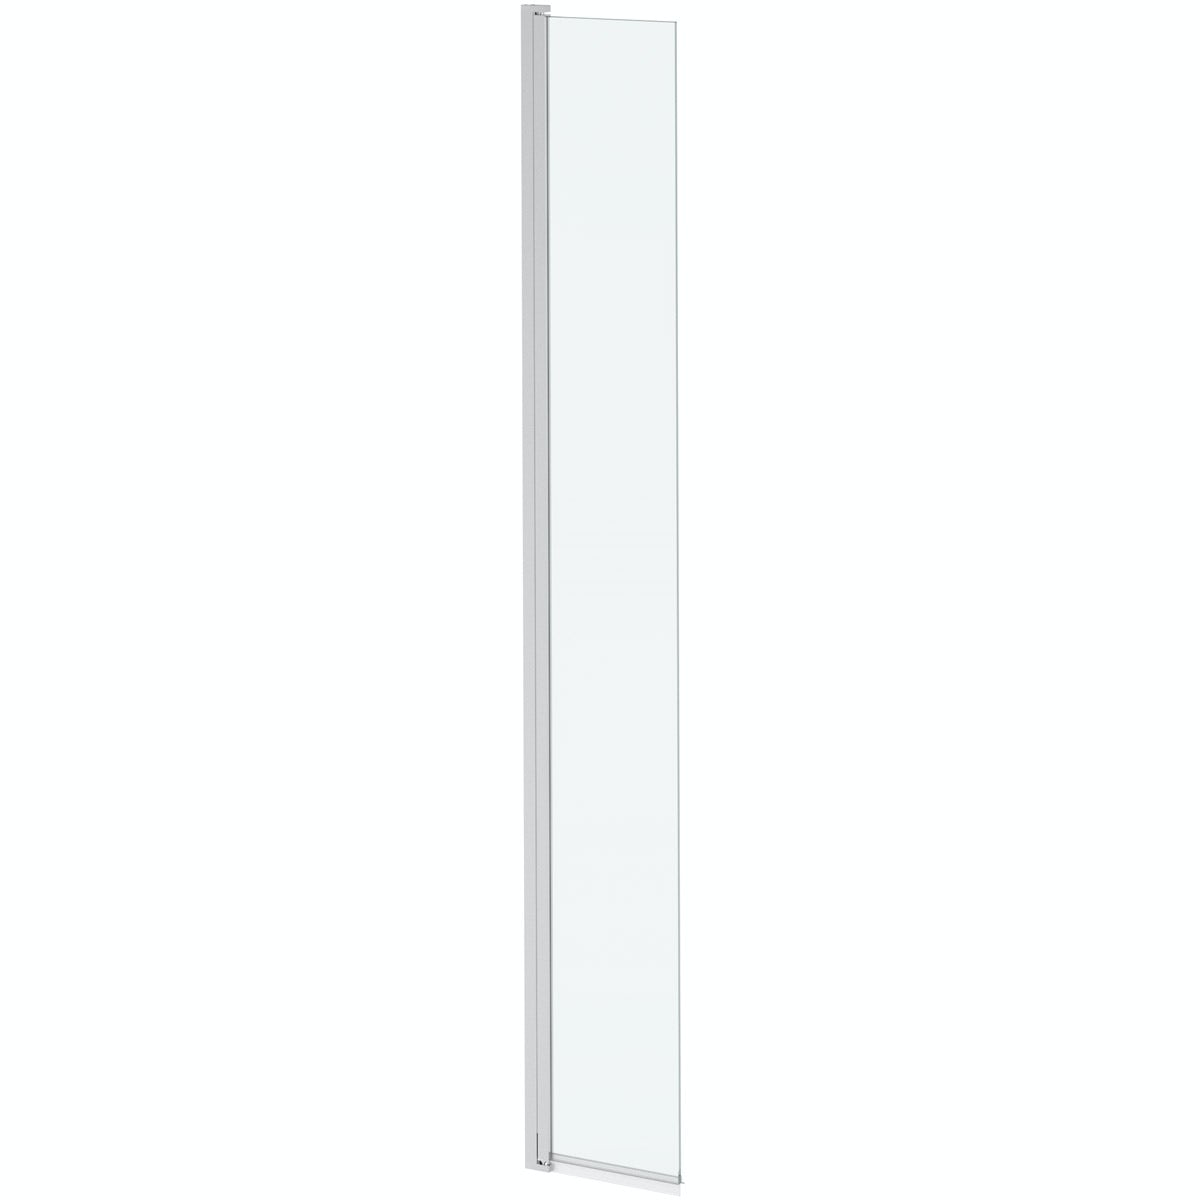 Mode 8mm wet room hinged return panel